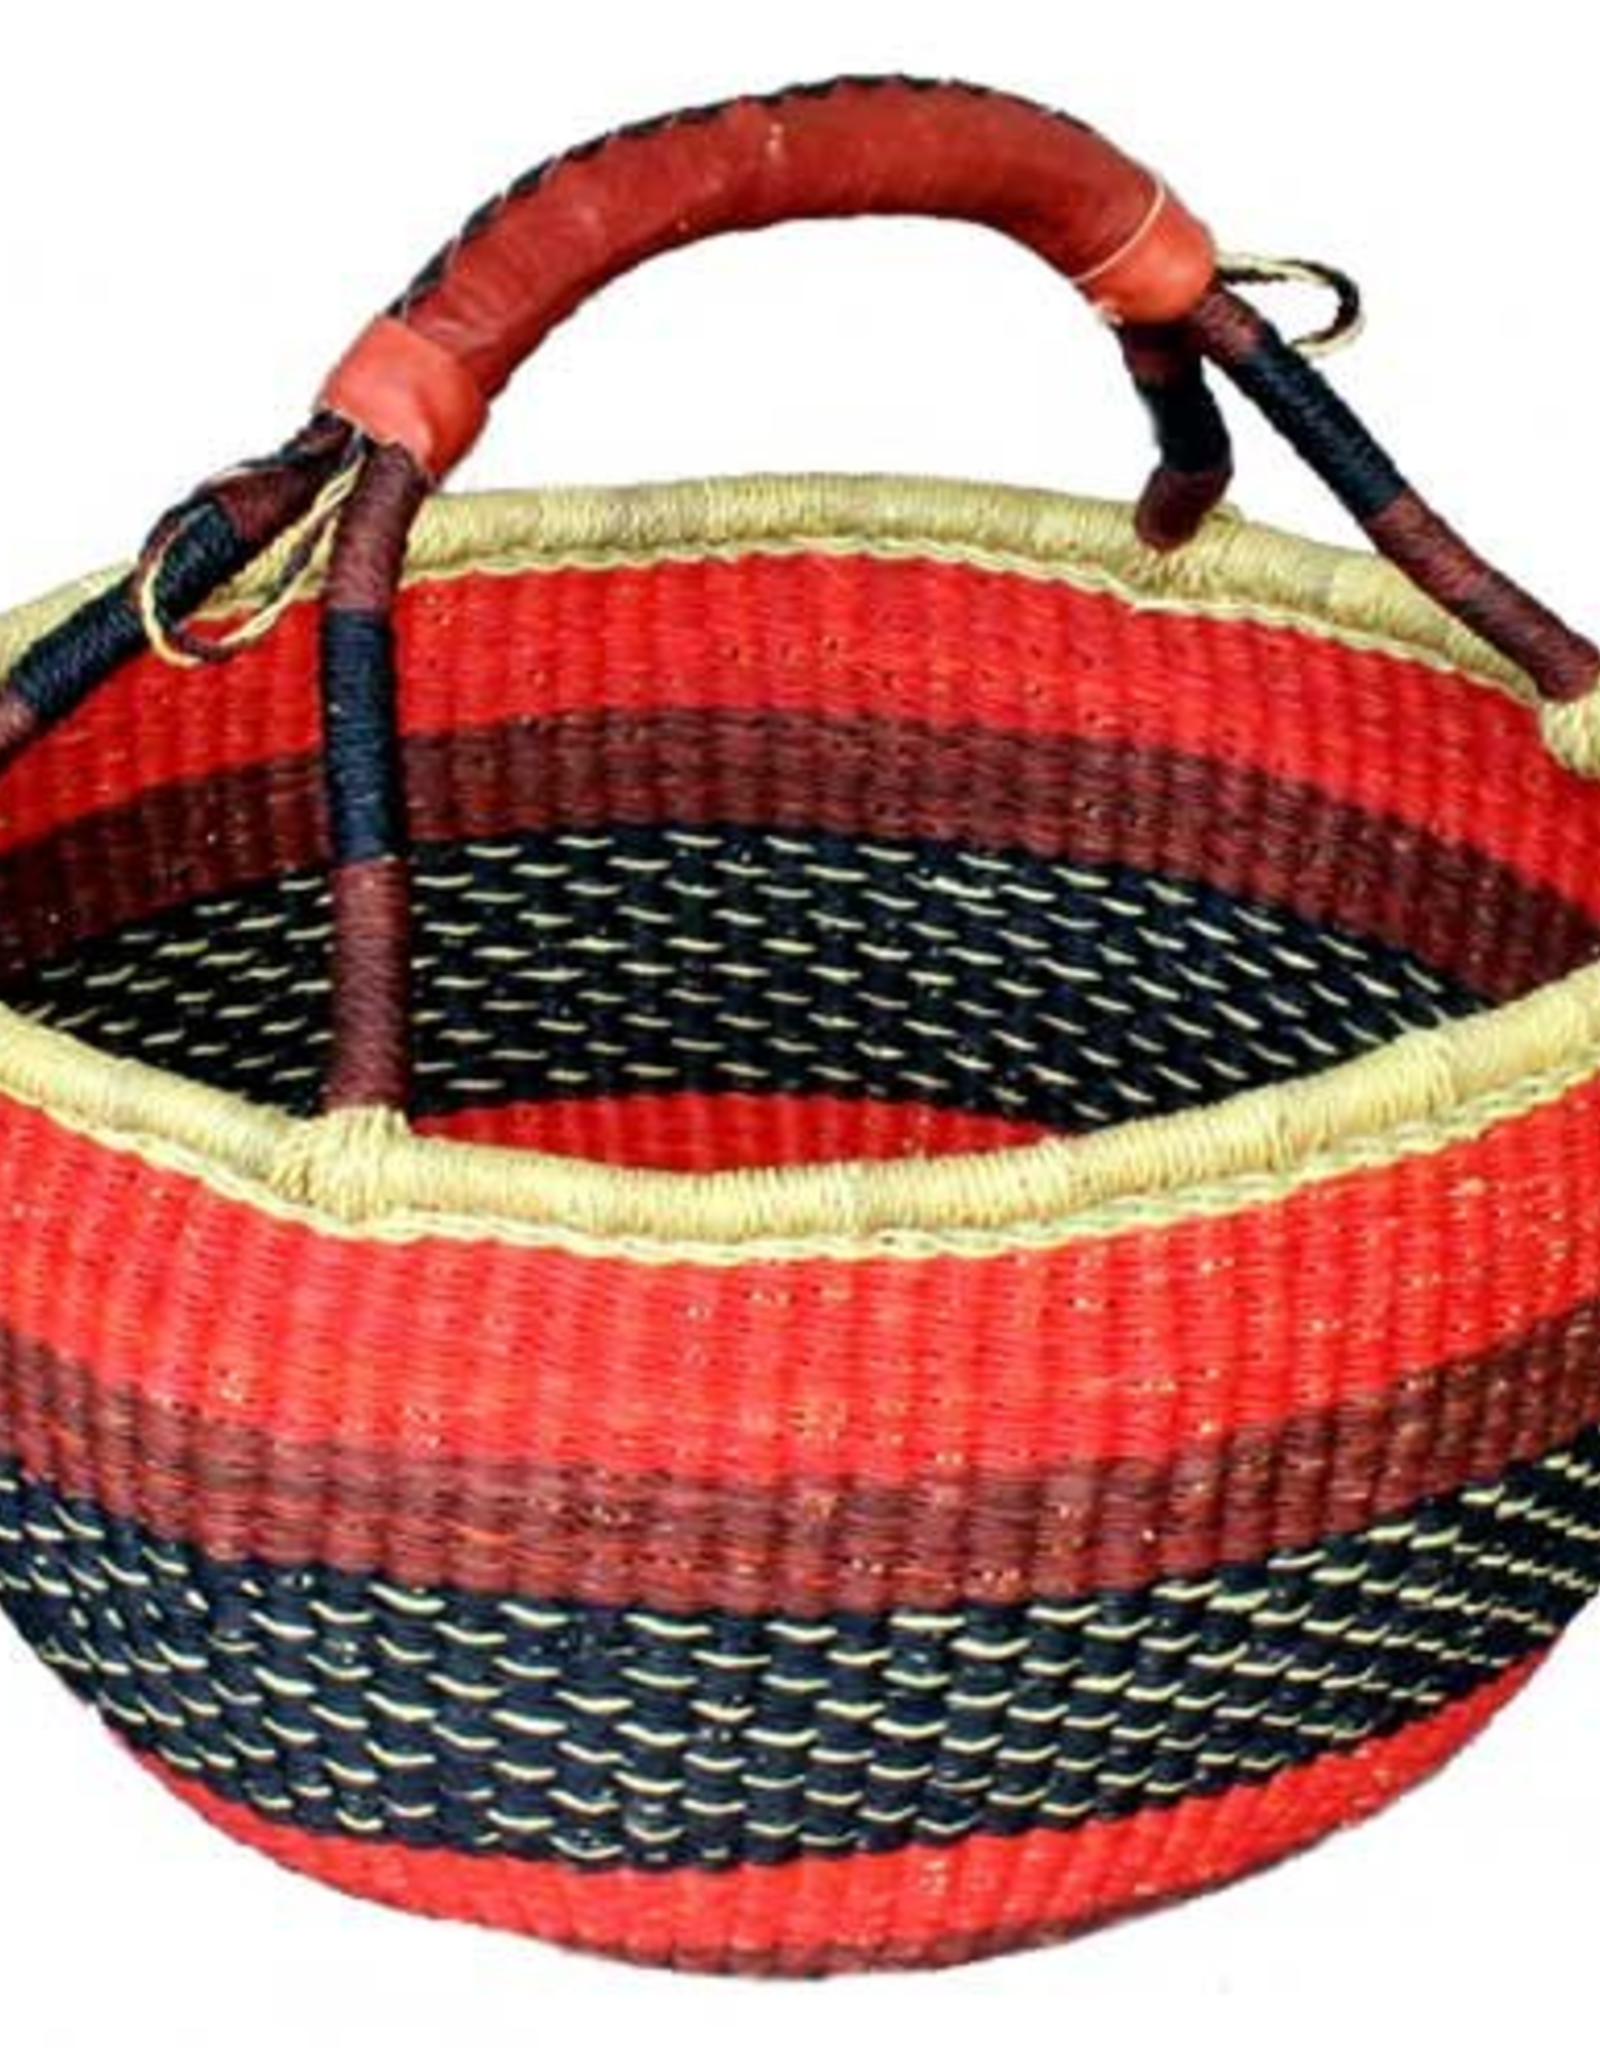 Woven Grass Mini Round Basket w/ Leather Handle, Ghana